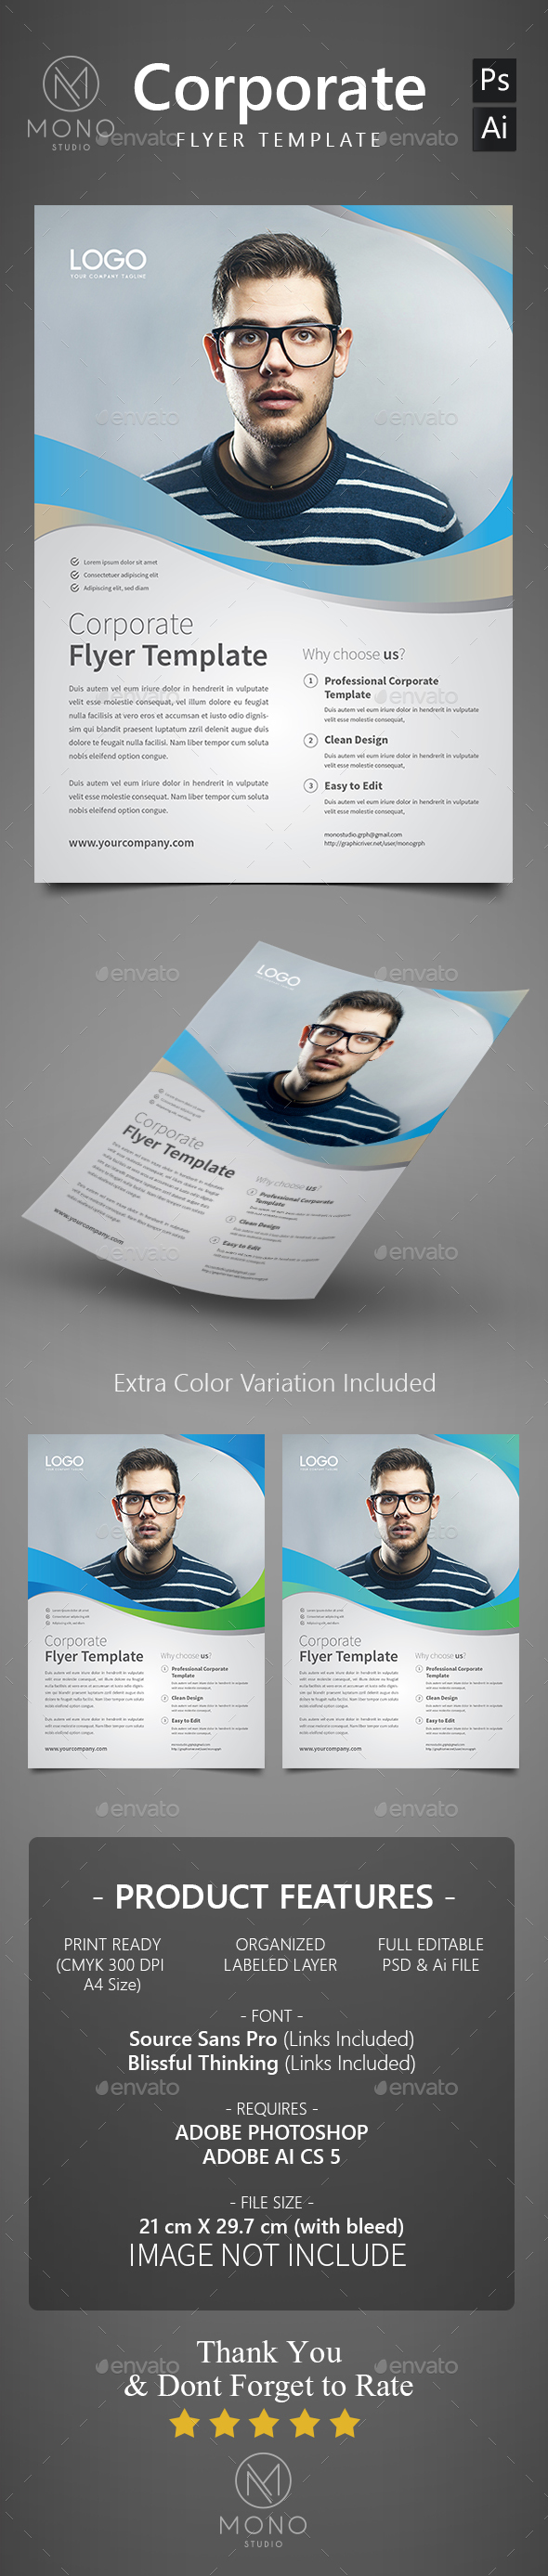 Corporate Flyer Template Set 7 - Corporate Flyers